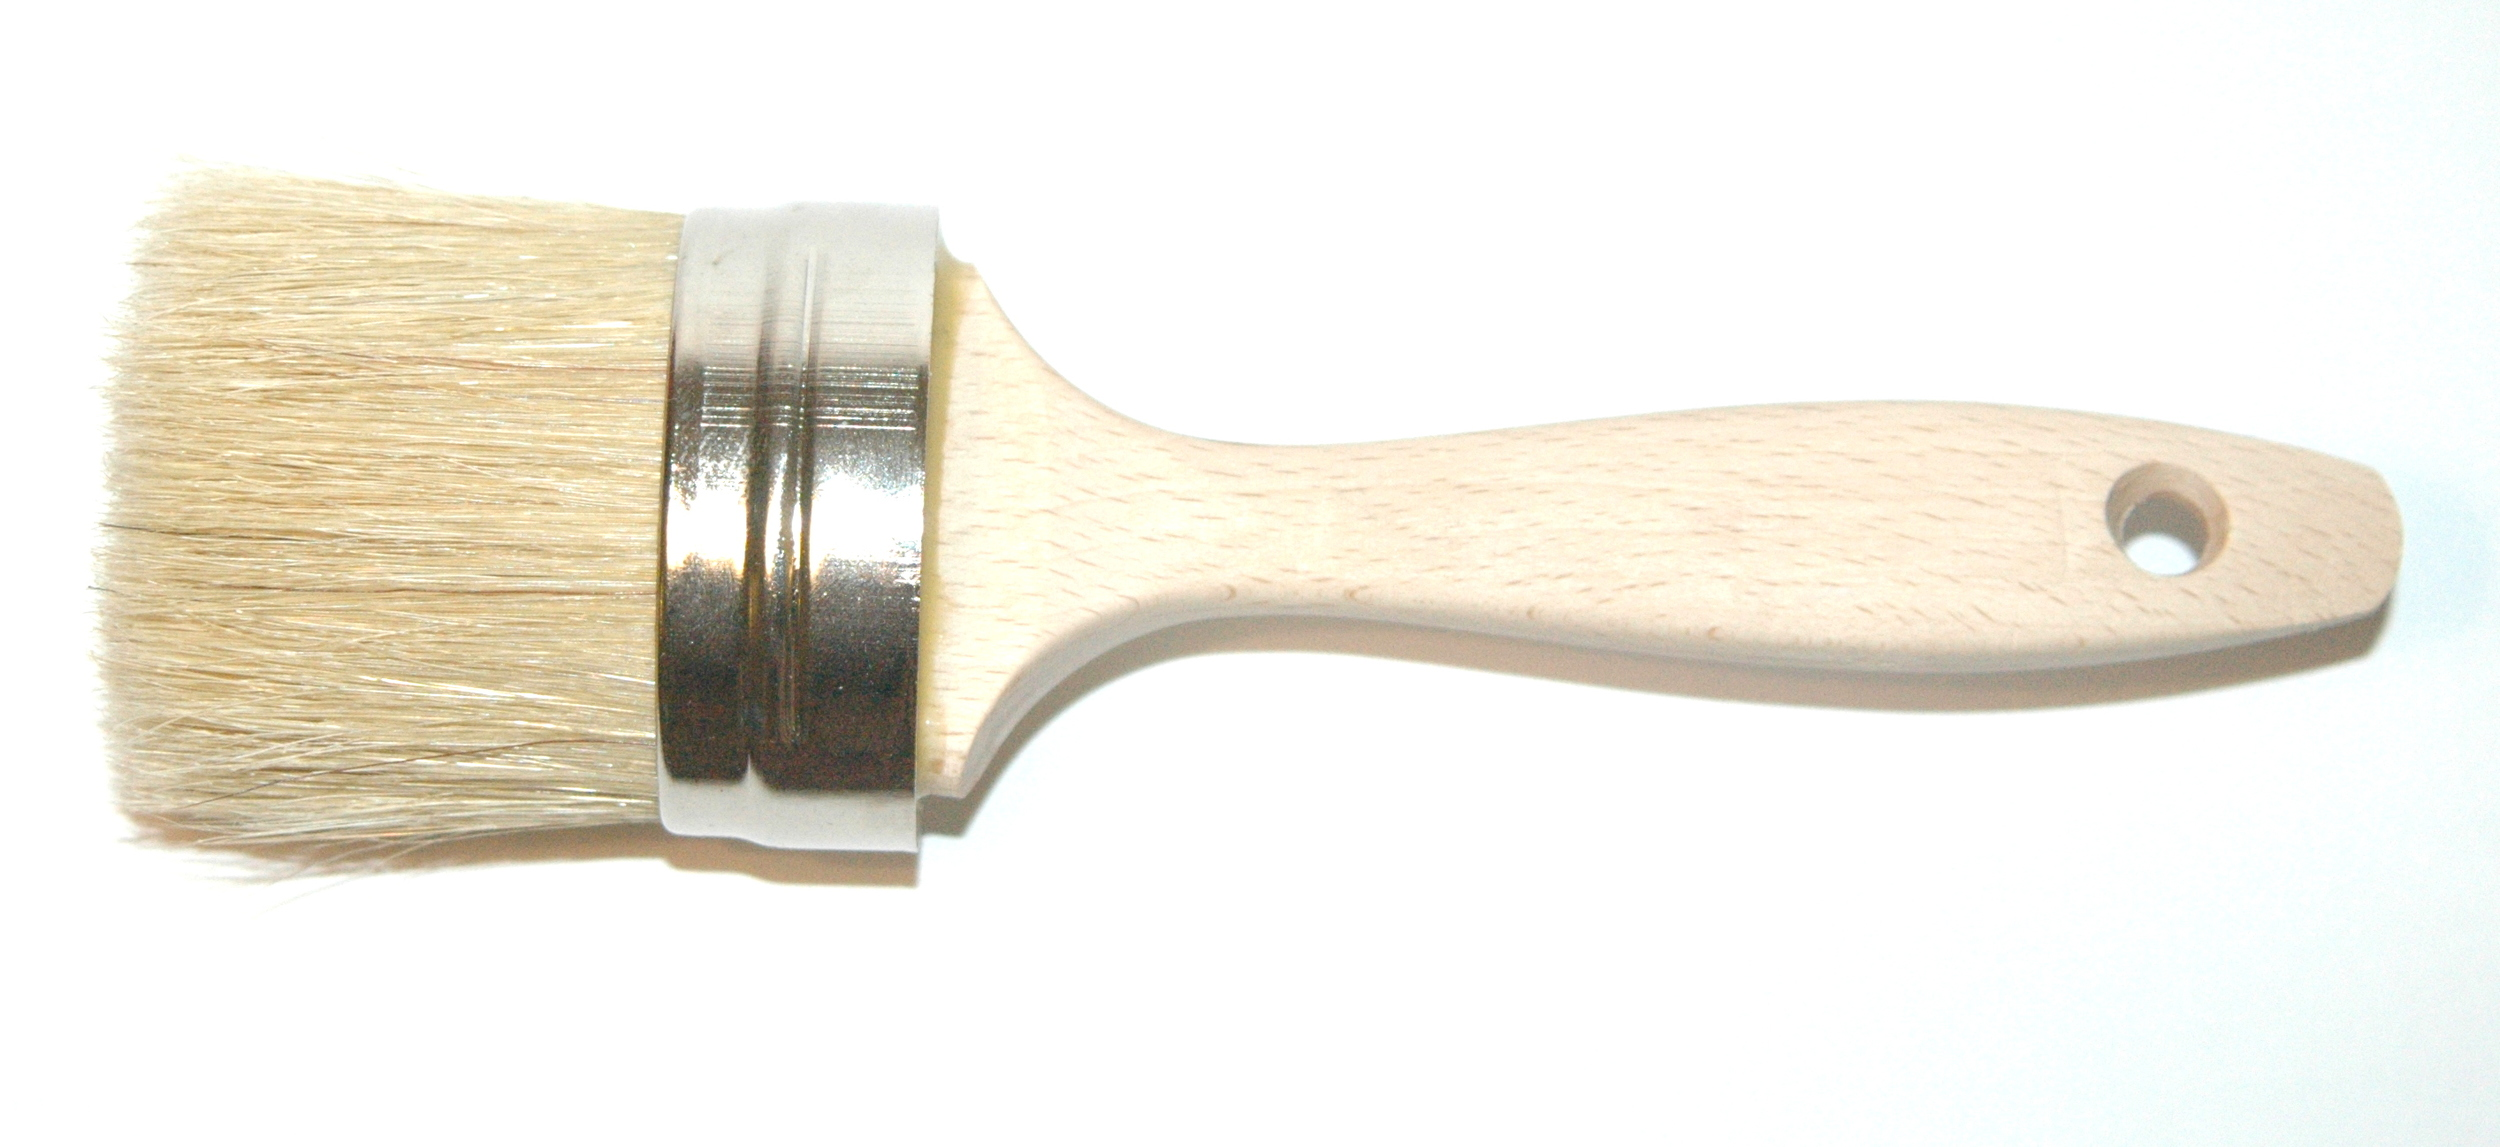 Wax Brush 2 Inch.JPG